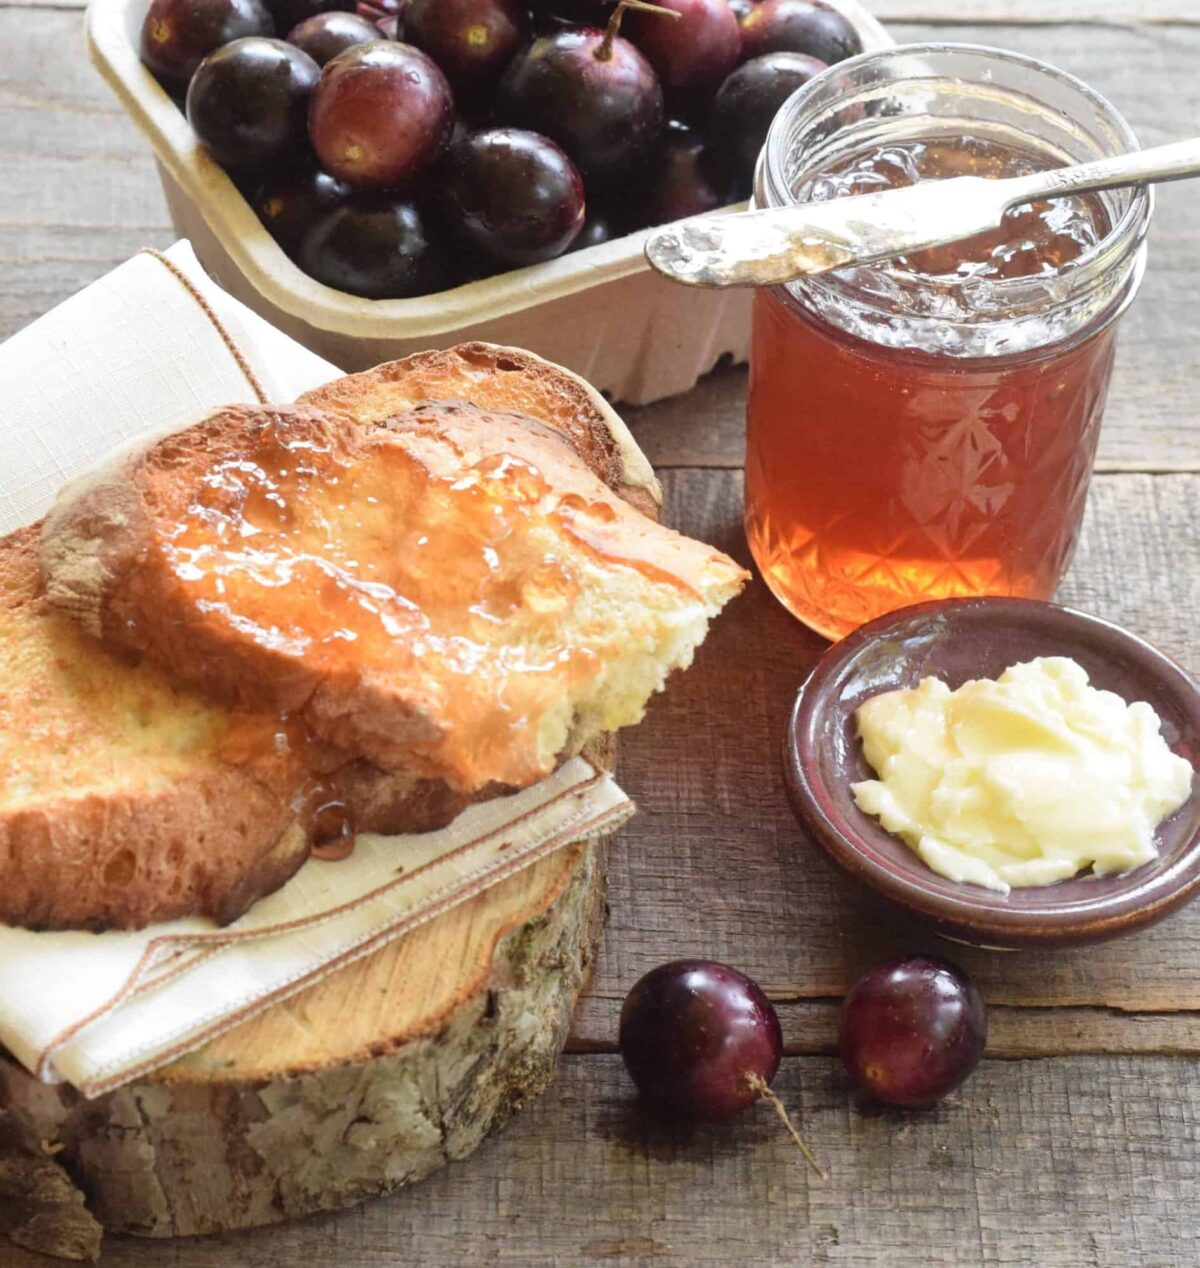 pint of muscadine grapes, jar of scuppernong jelly with knife resting on it, buttered slices of bread with jelly on a napkin on a slice of wood, butter in a ceramic plate